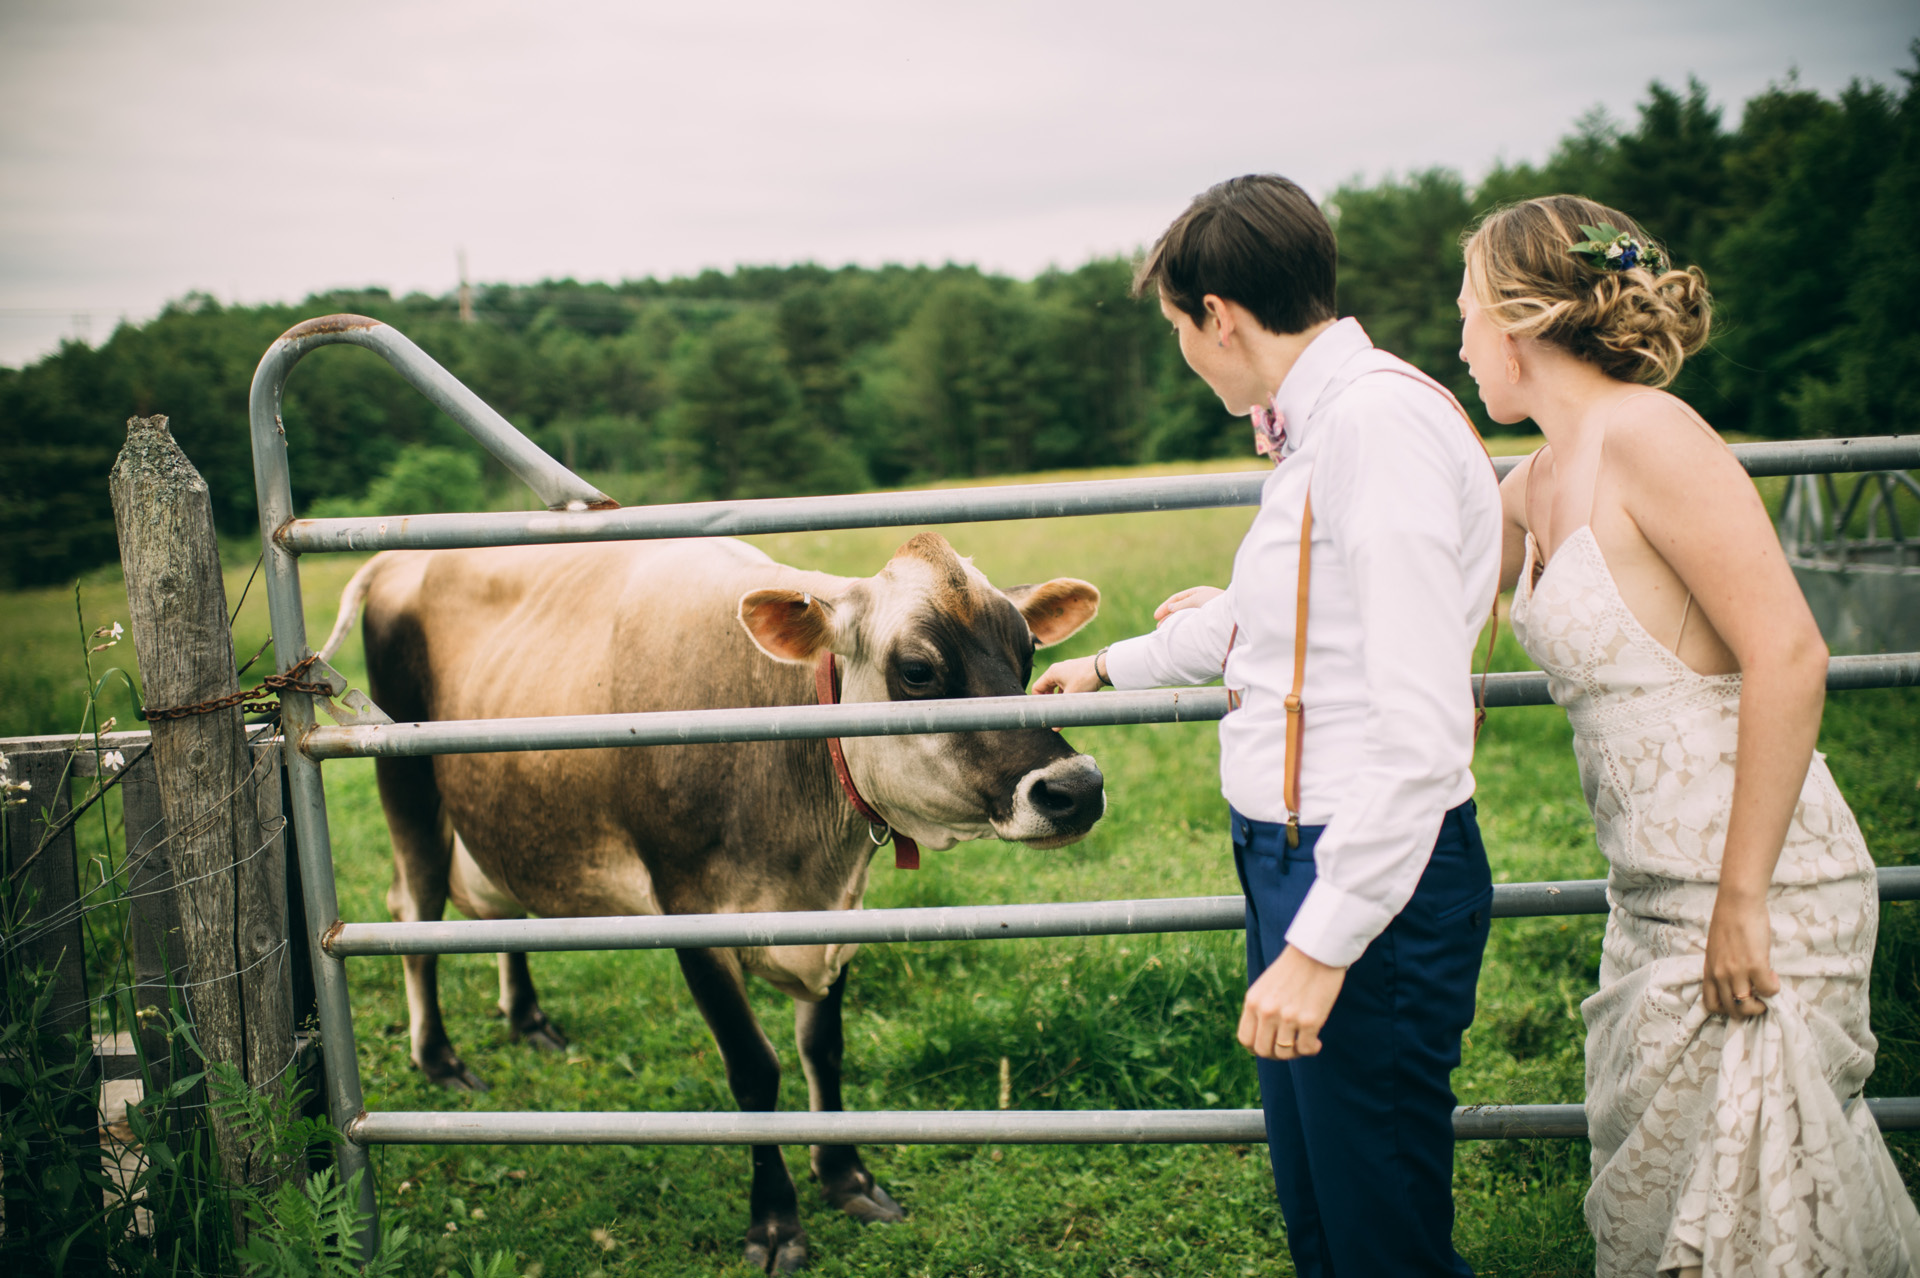 broadturn-farm-wedding-72